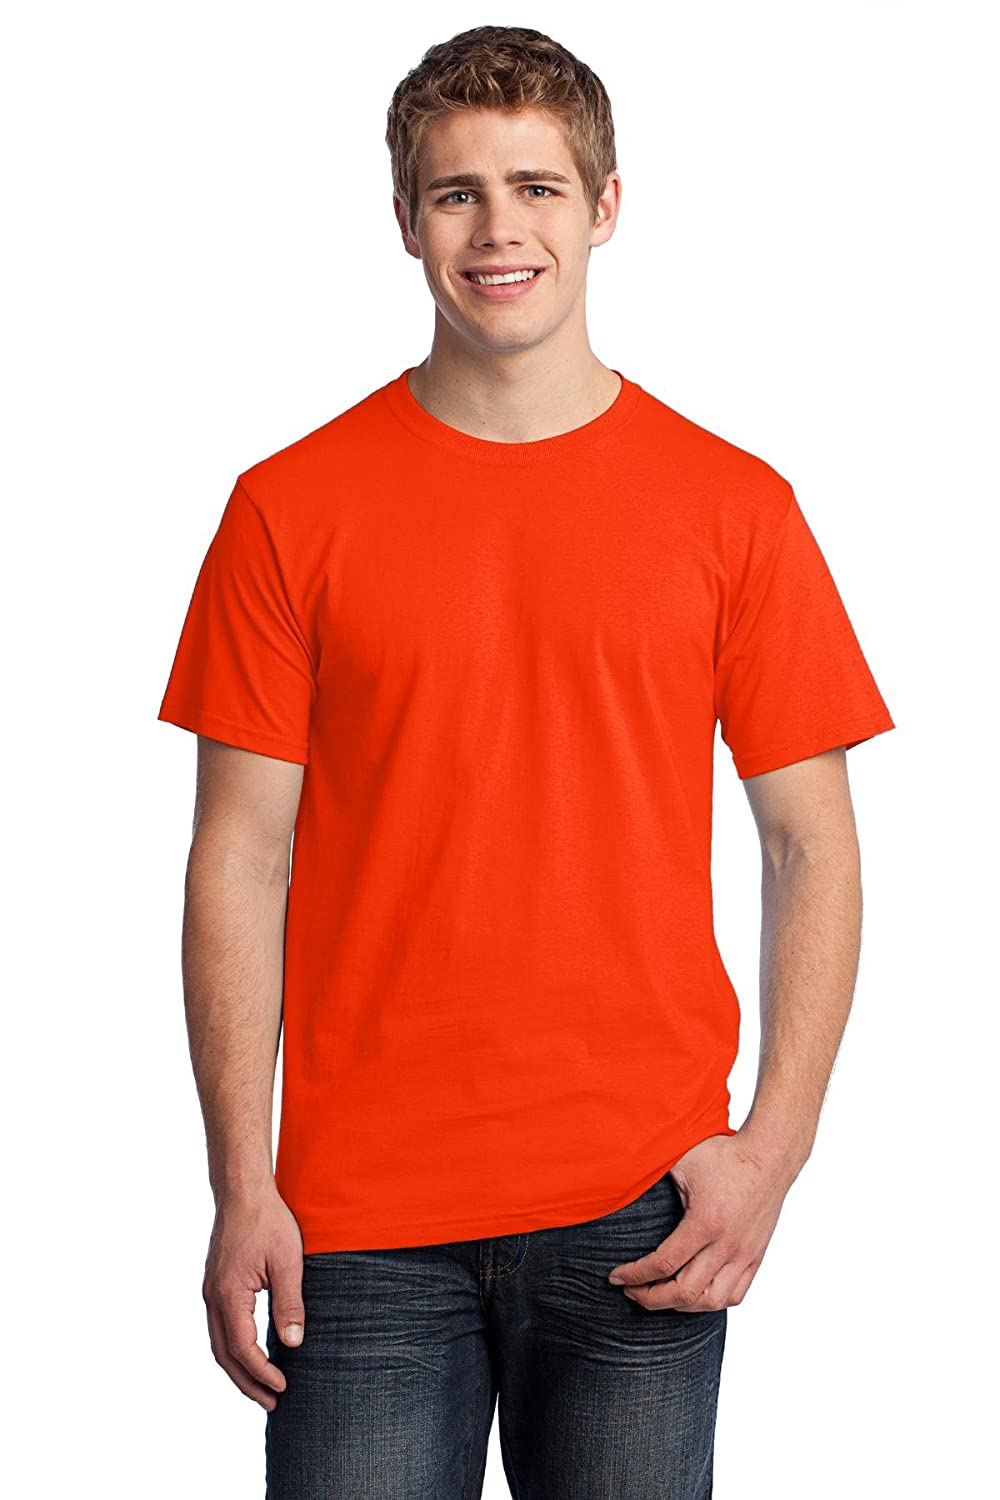 Fruit of the Loom 3930 100/% Heavy Cotton Tee Burnt Orange 3 Pack